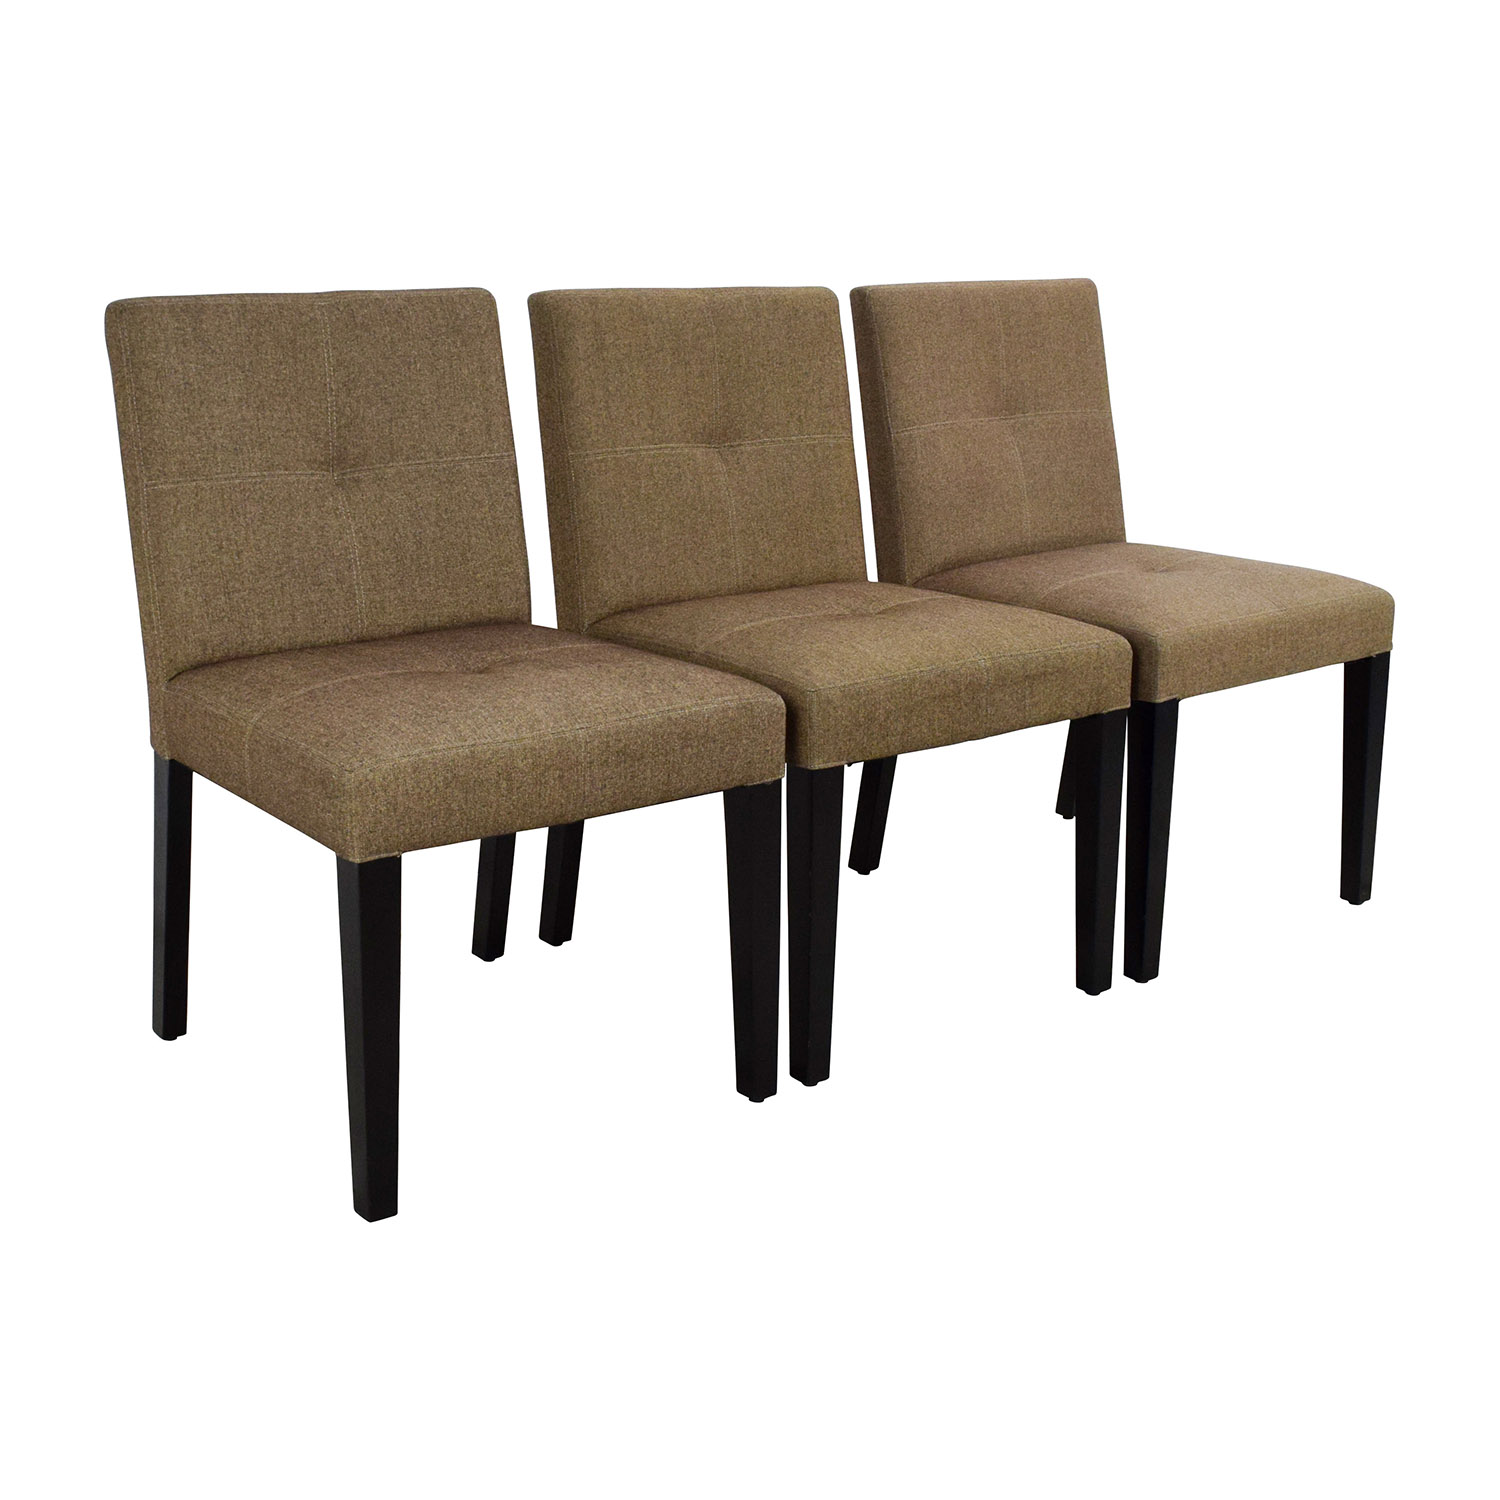 62 Off Crate And Barrel Crate Barrel Epoch Chairs